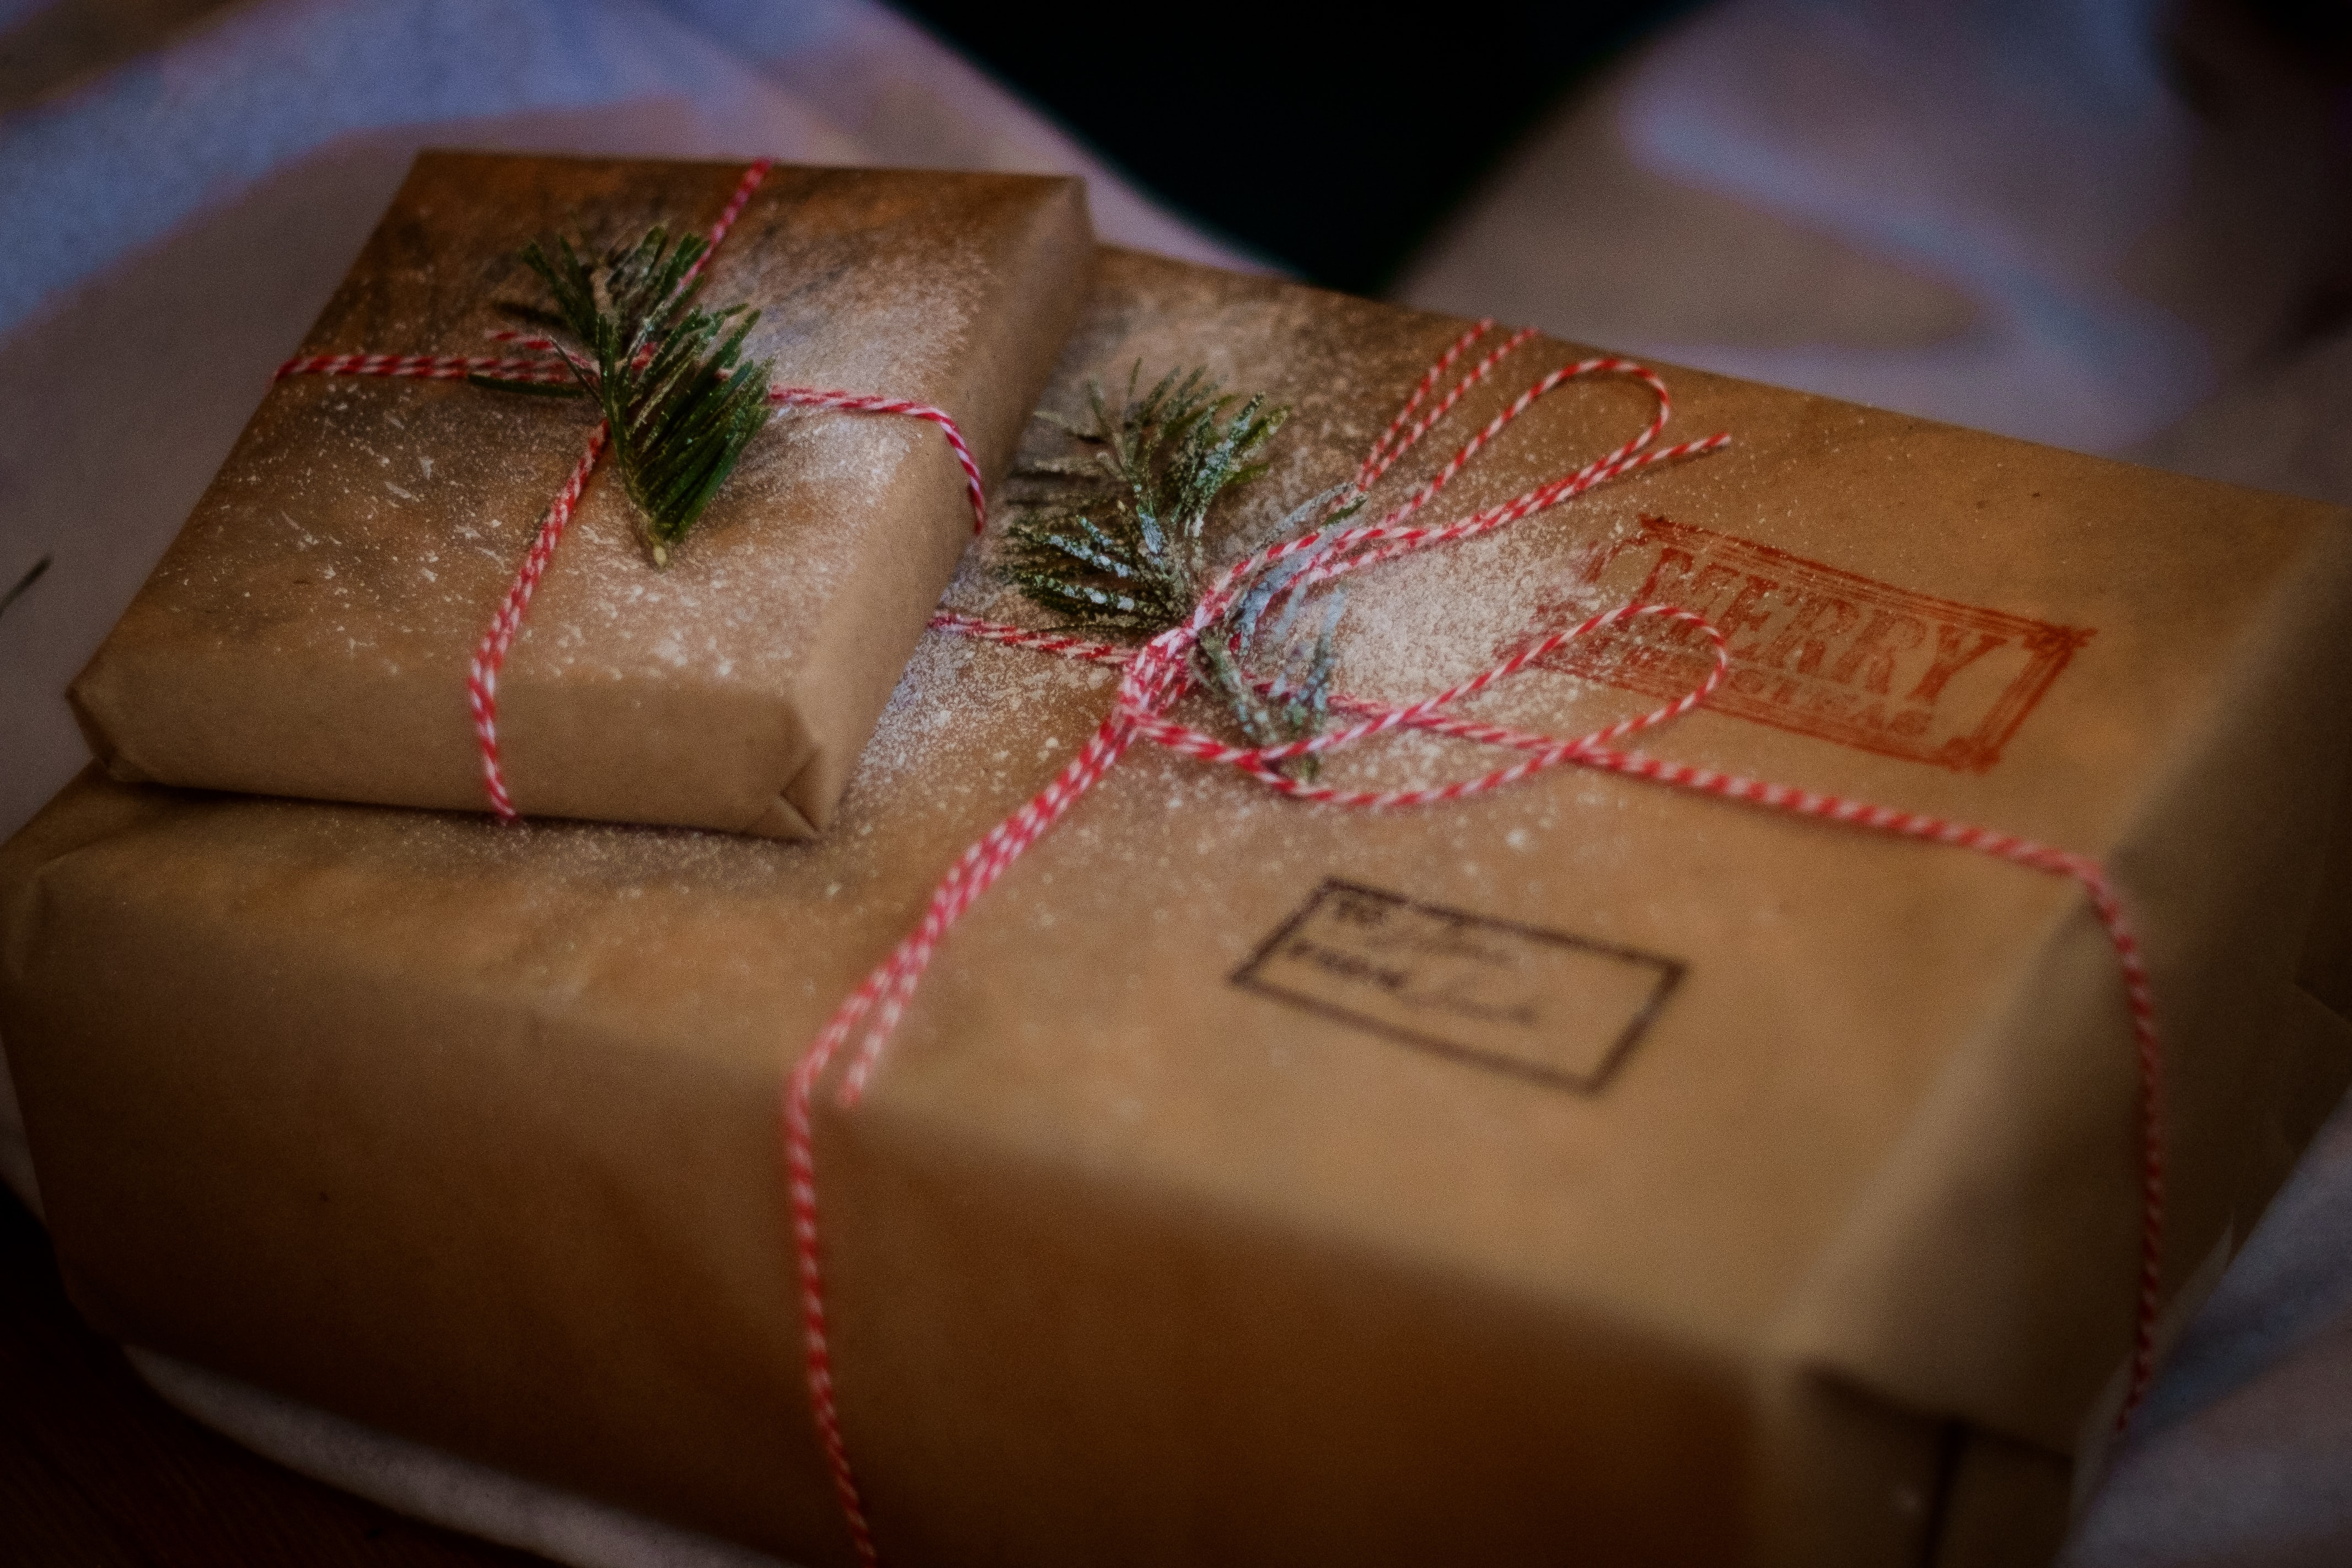 7 Tips for Online Consumers to Protect Themselves this Holiday Season